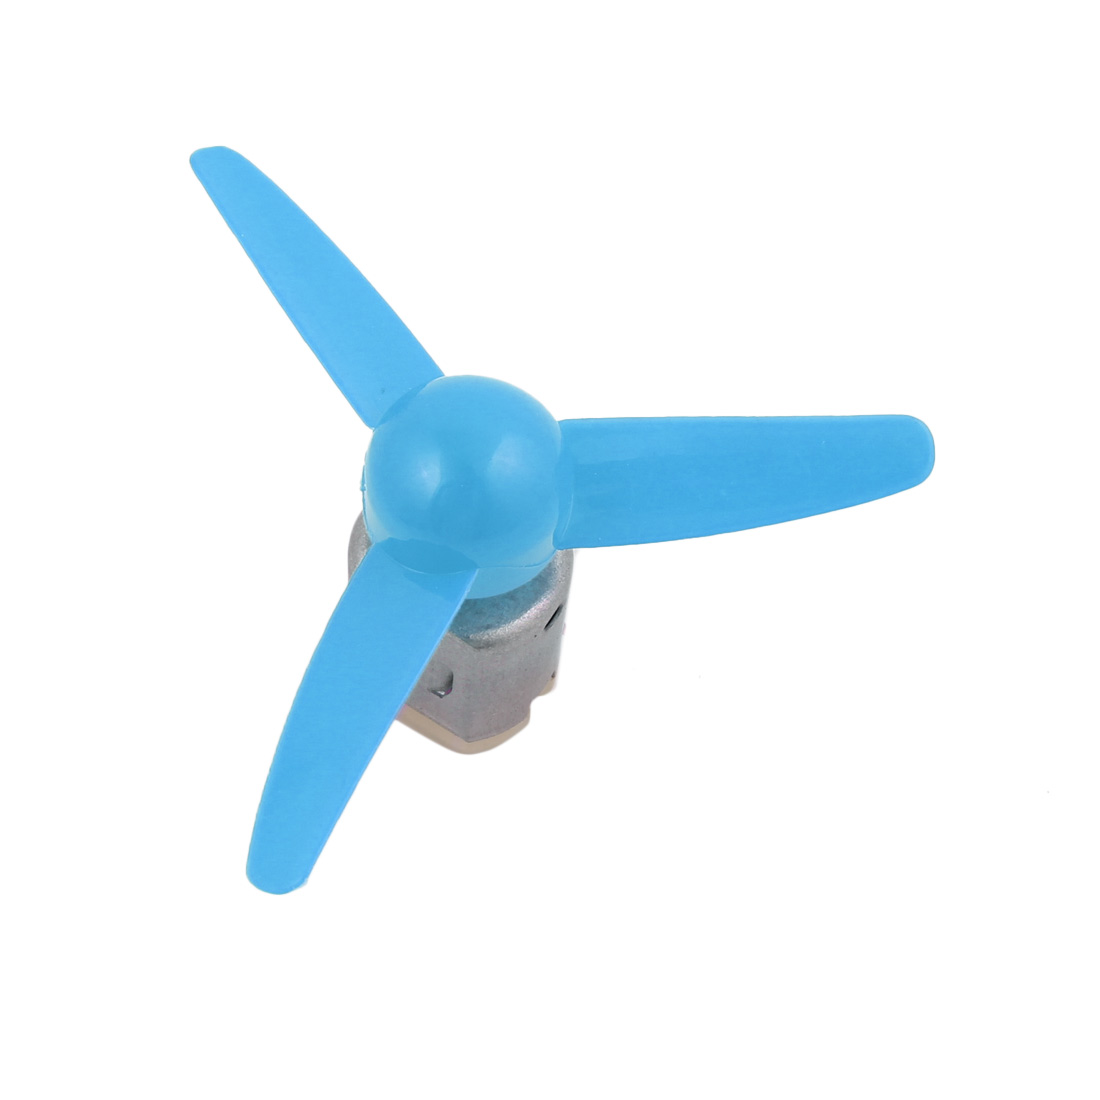 F130S DC 12V 20000RPM Mini Electric Motor w Blue Propeller for RC Model - image 1 de 5